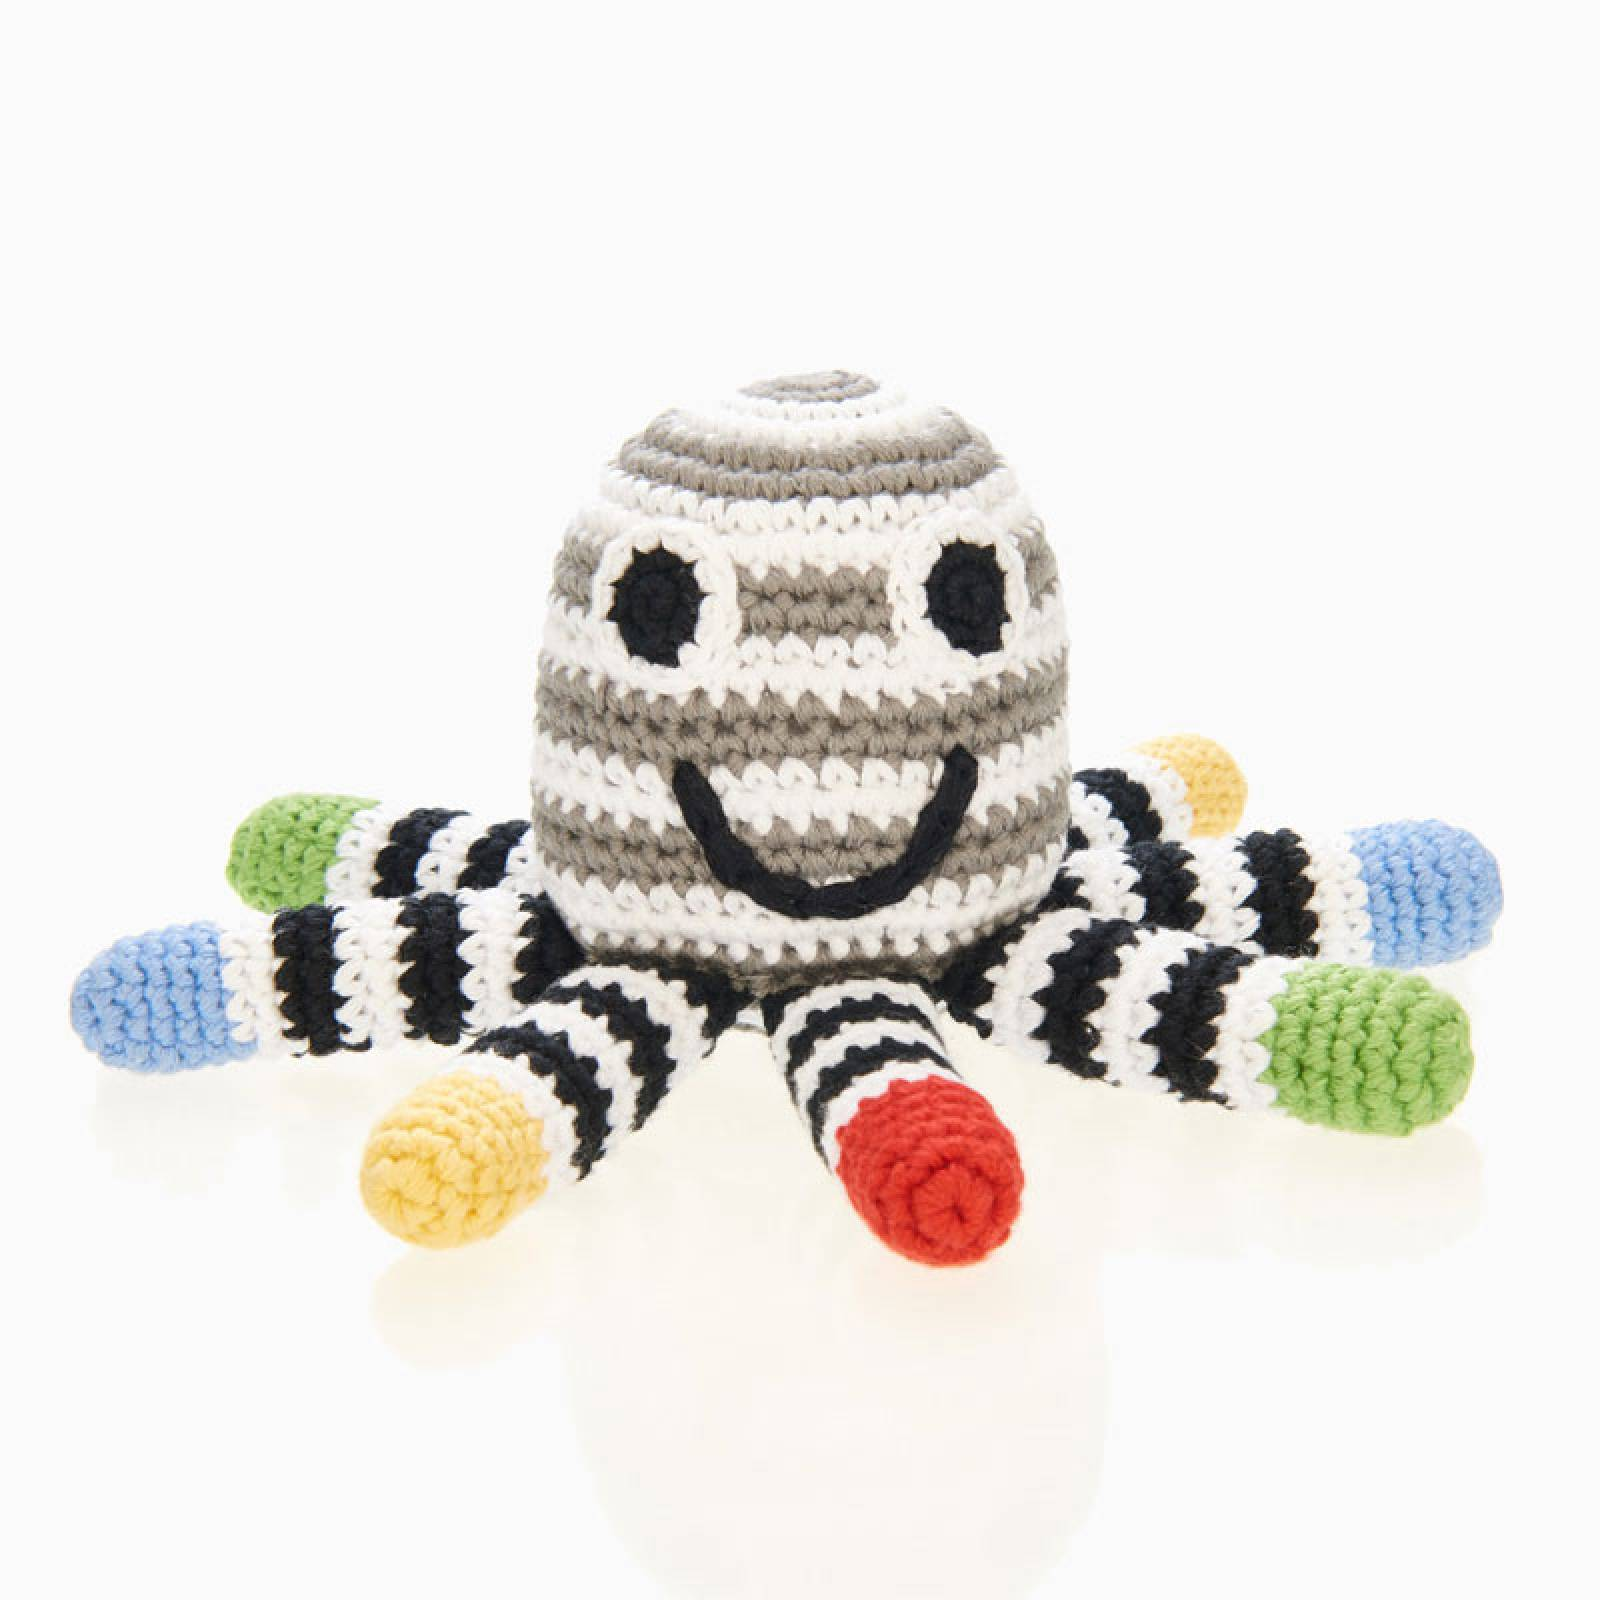 Crochet Octopus Rattle In Black And White 0+